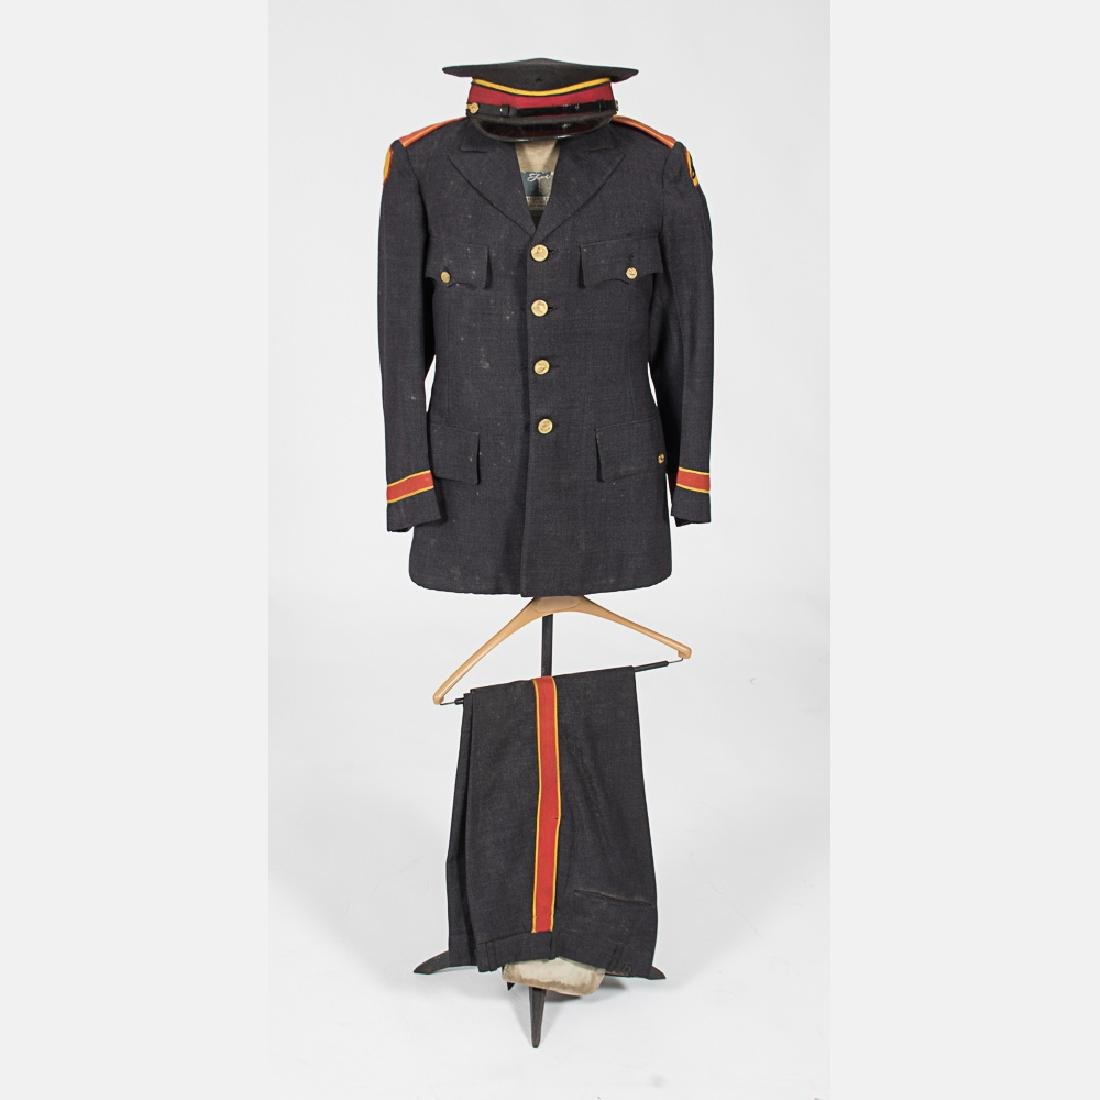 A Wool Cashier's (Brinks) Uniform from the Century of